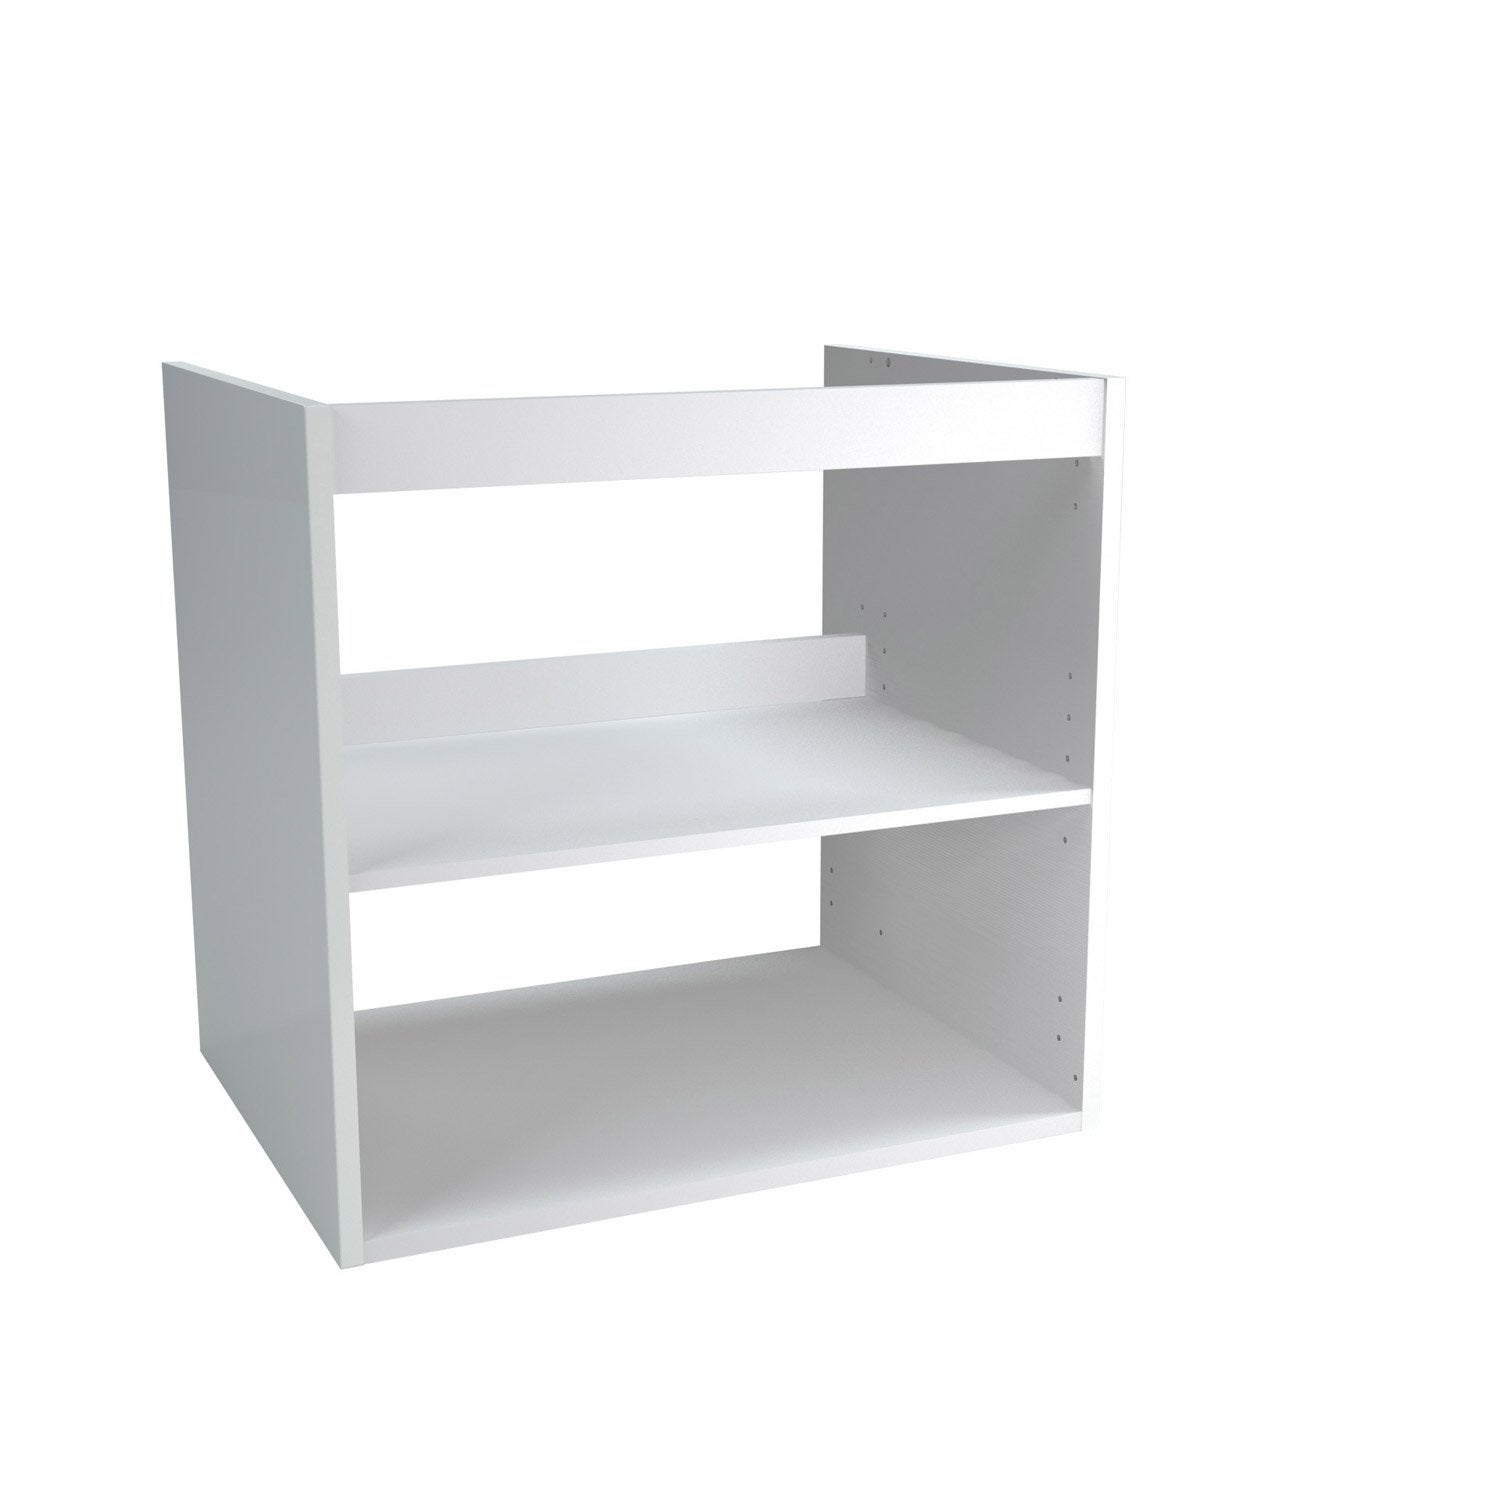 Meuble sous comble leroy merlin maison design - Meuble vasque leroy merlin ...